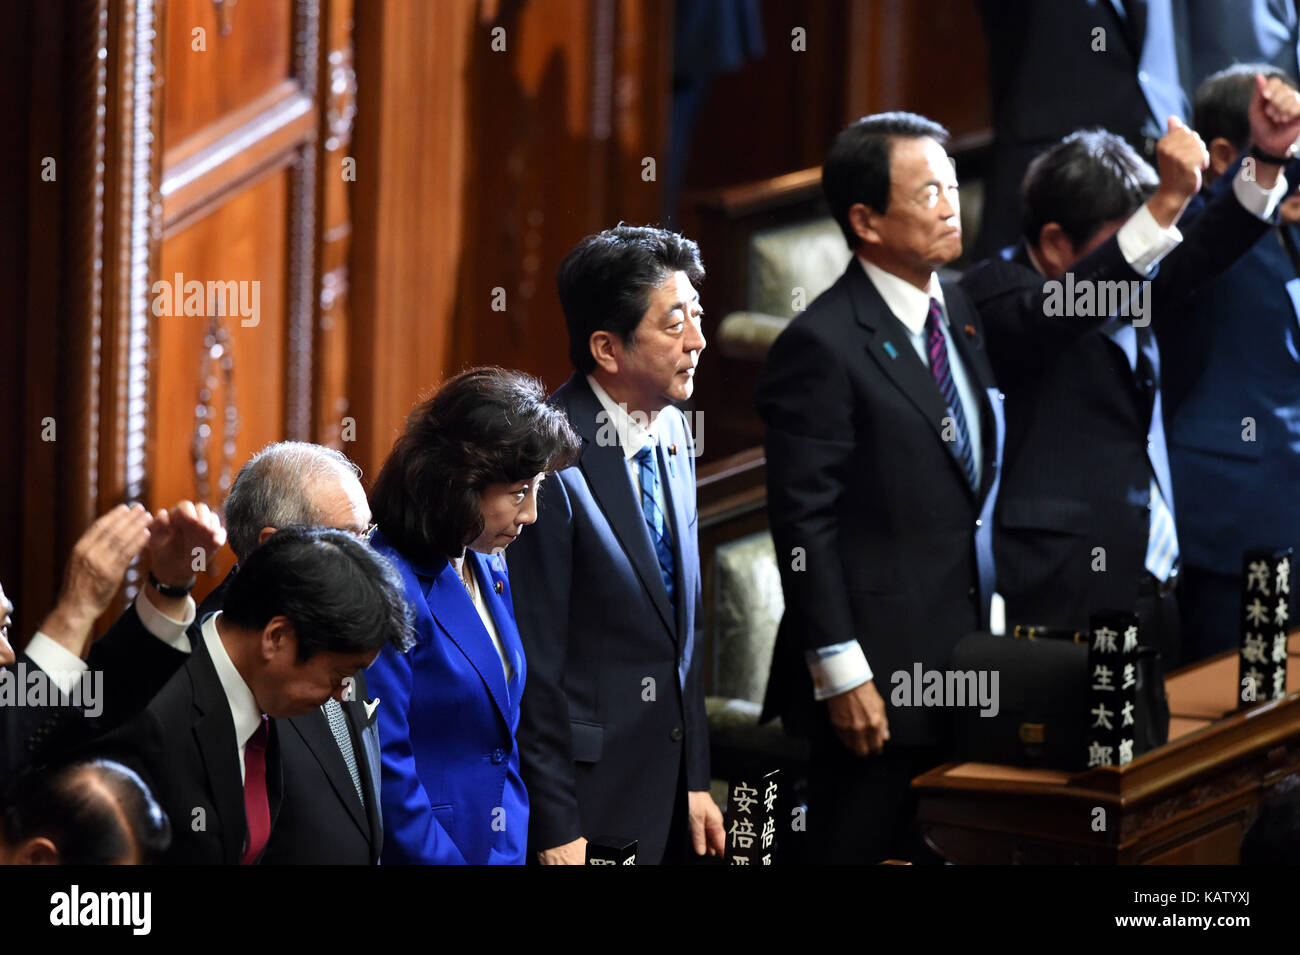 (170928) -- TOKYO, Sept. 28, 2017 (Xinhua) -- Japanese Prime Minister Shinzo Abe (C) listens as House of Representatives Stock Photo